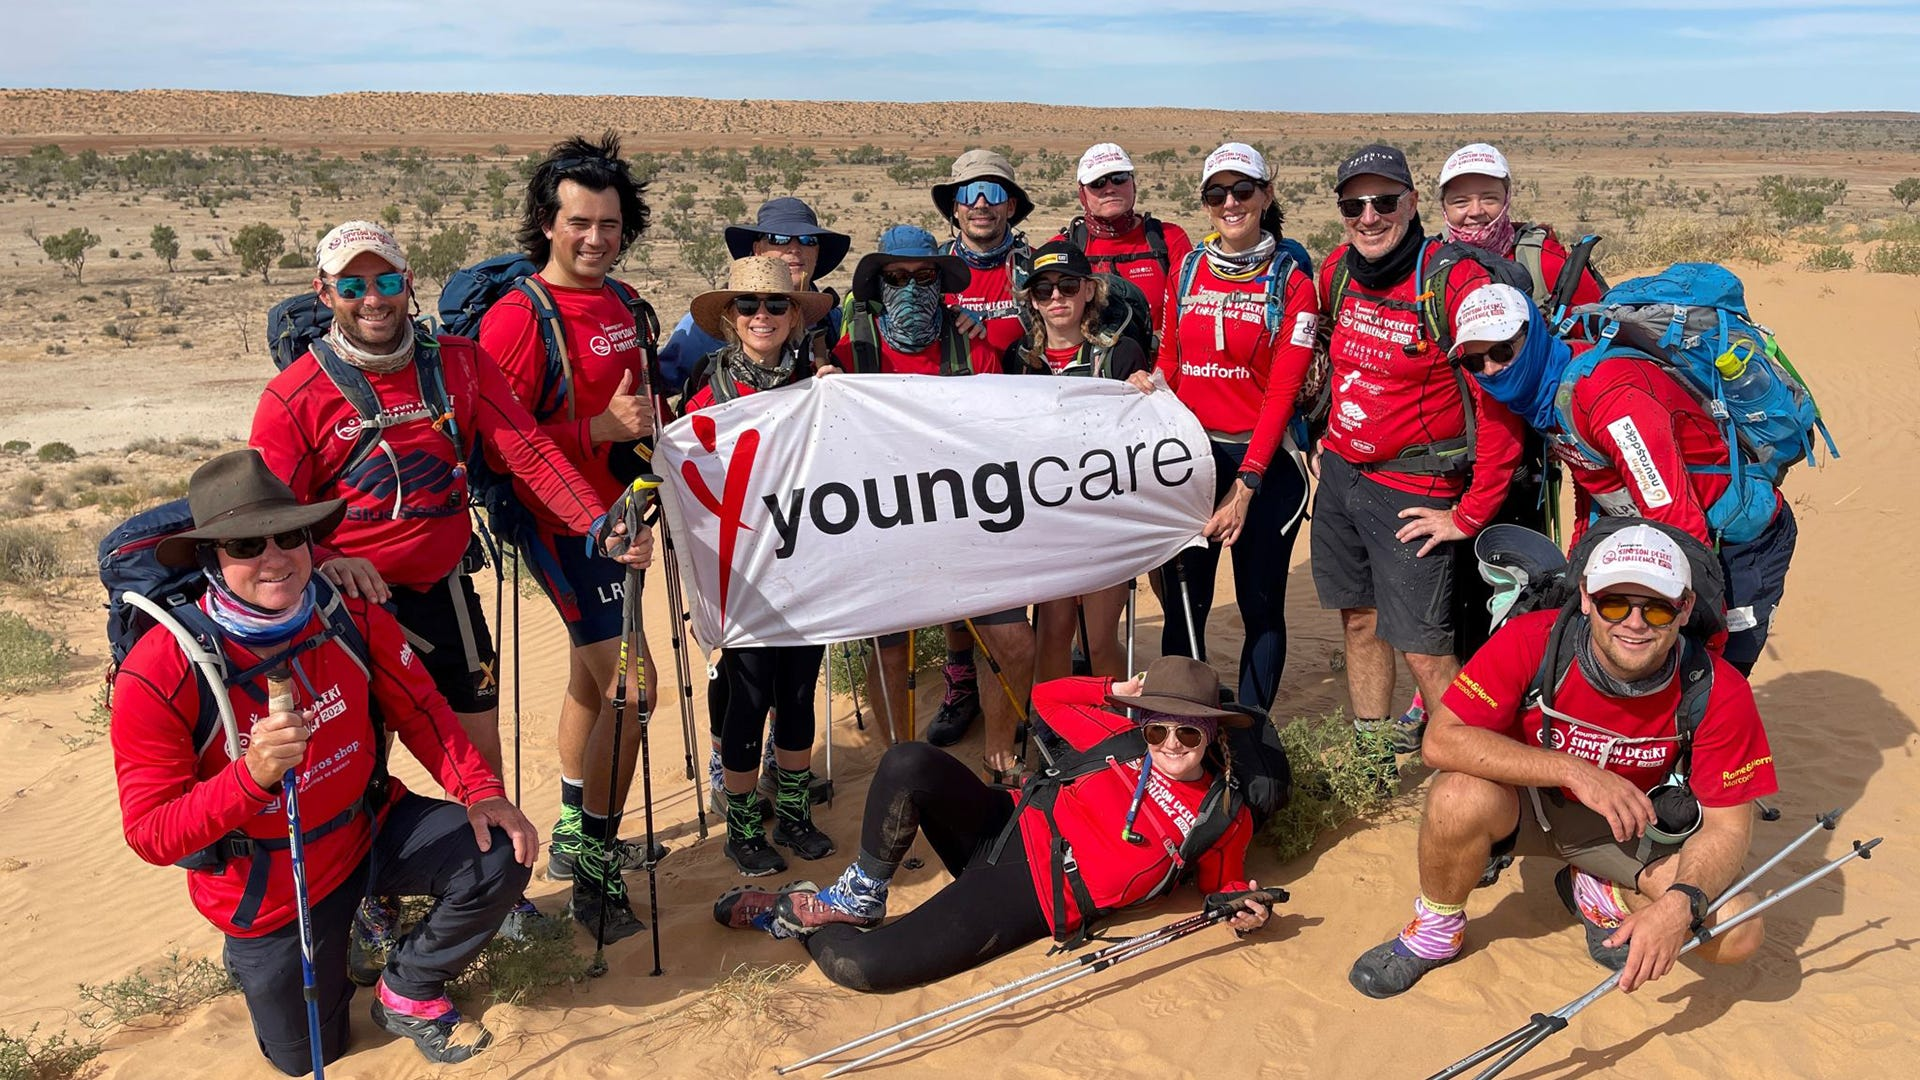 Youngcare Simpsons Desert Challenge Team